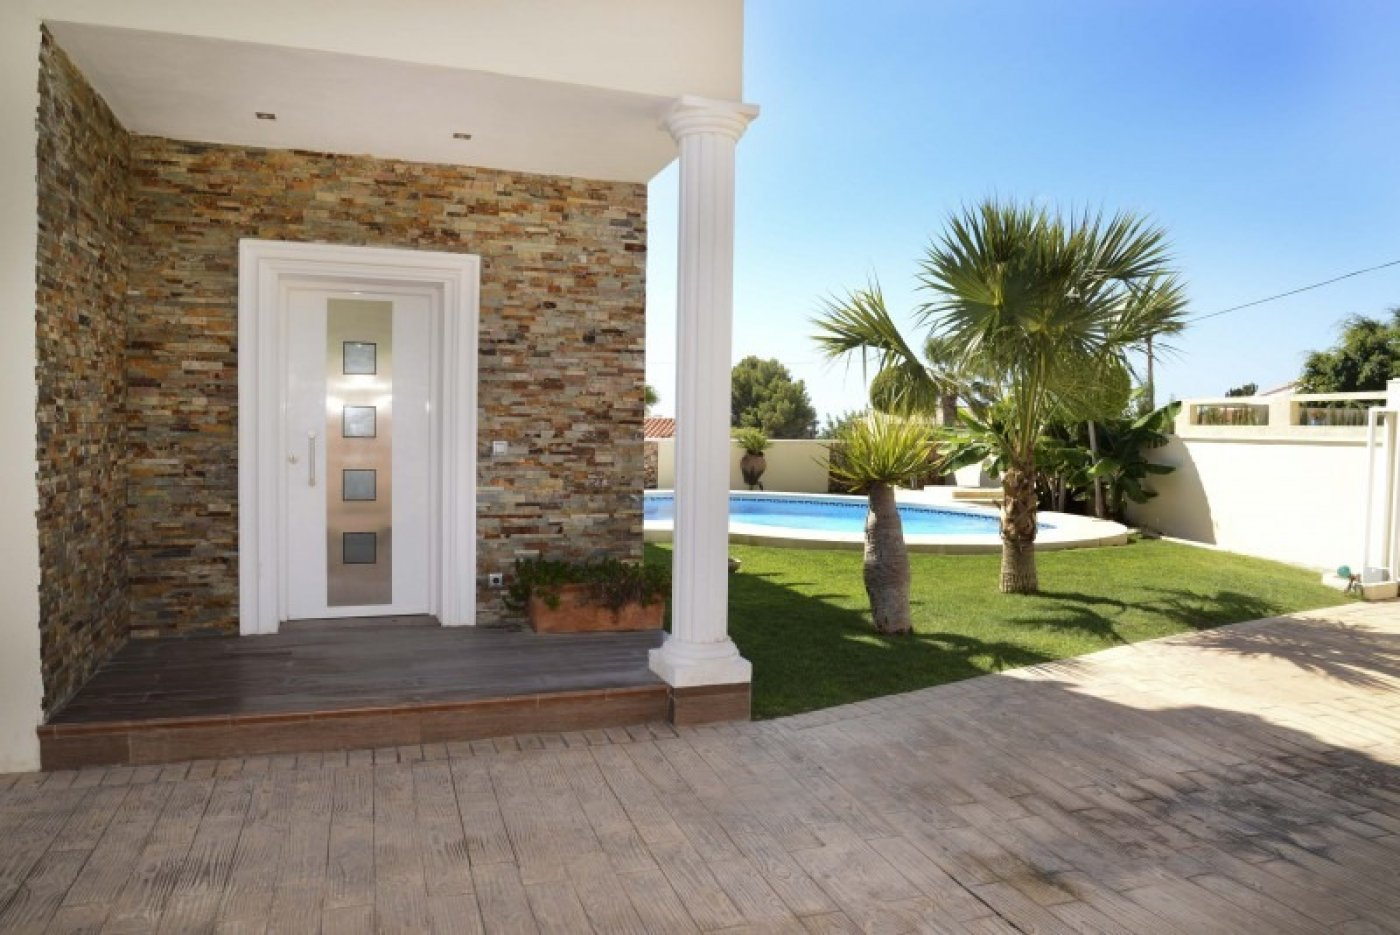 Villa - Ready To Move And Live - Calpe - Calpe